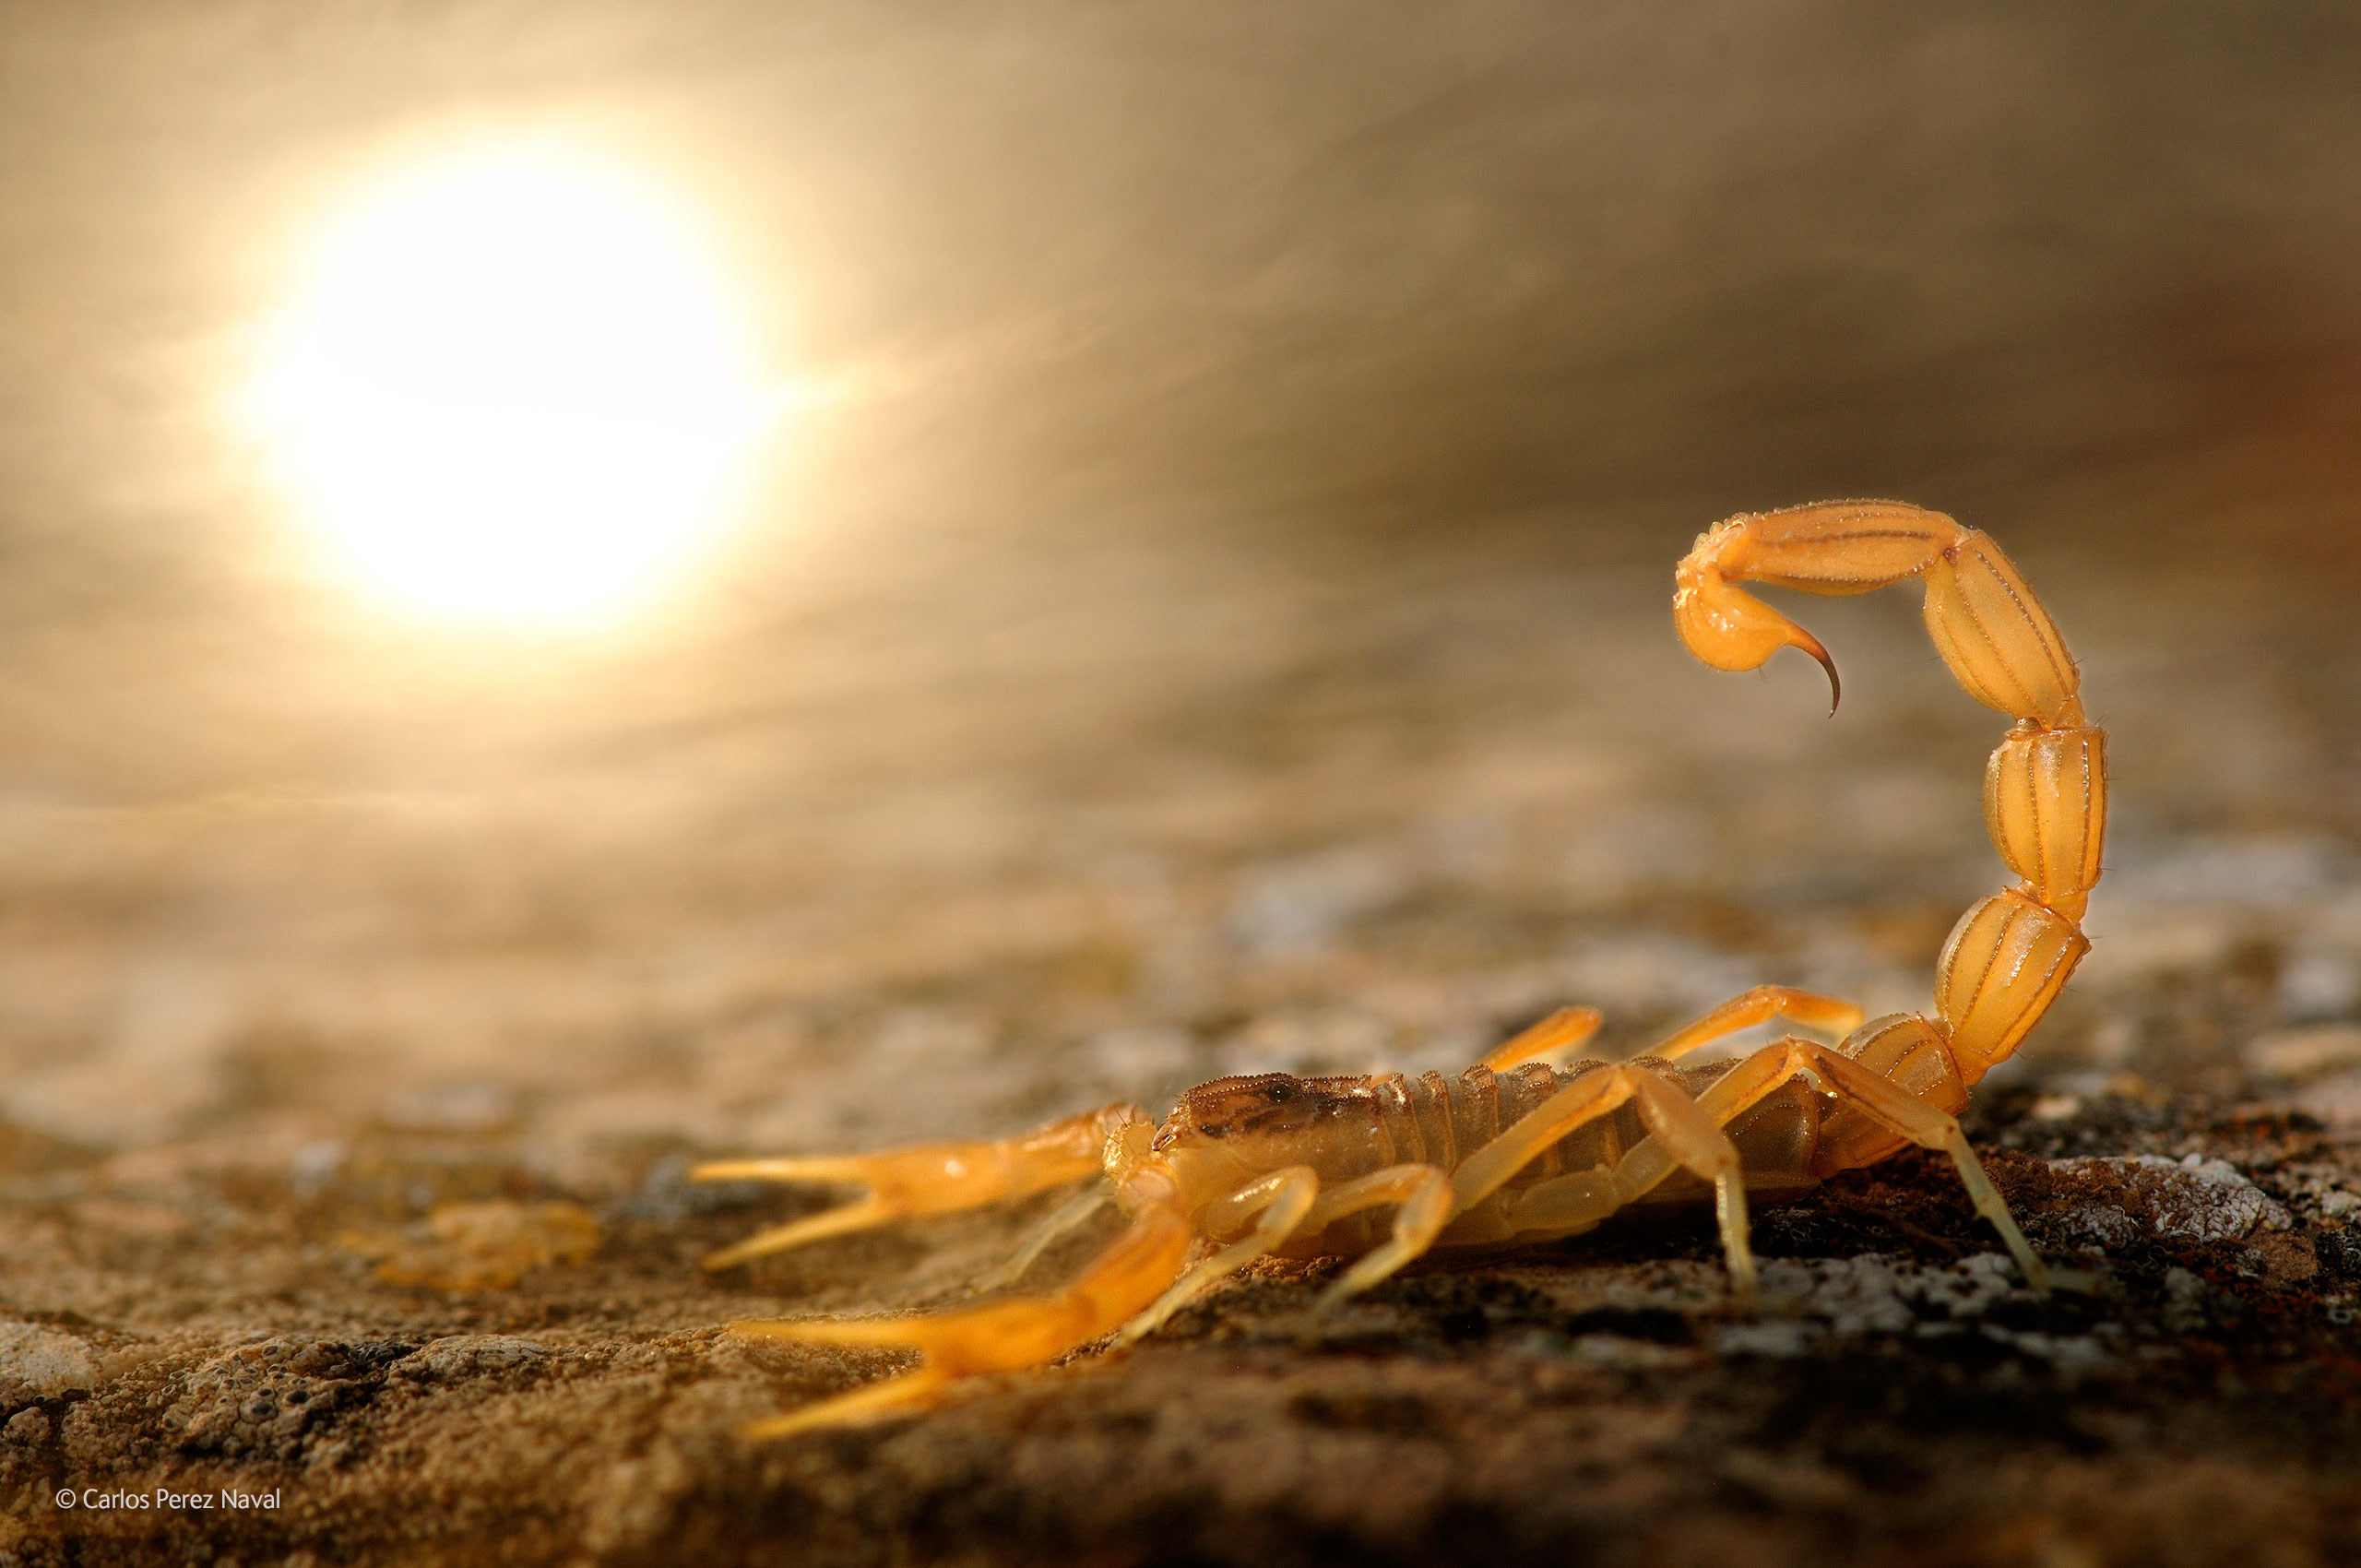 Wildlife Photographer Of The Year Stinger in the sun